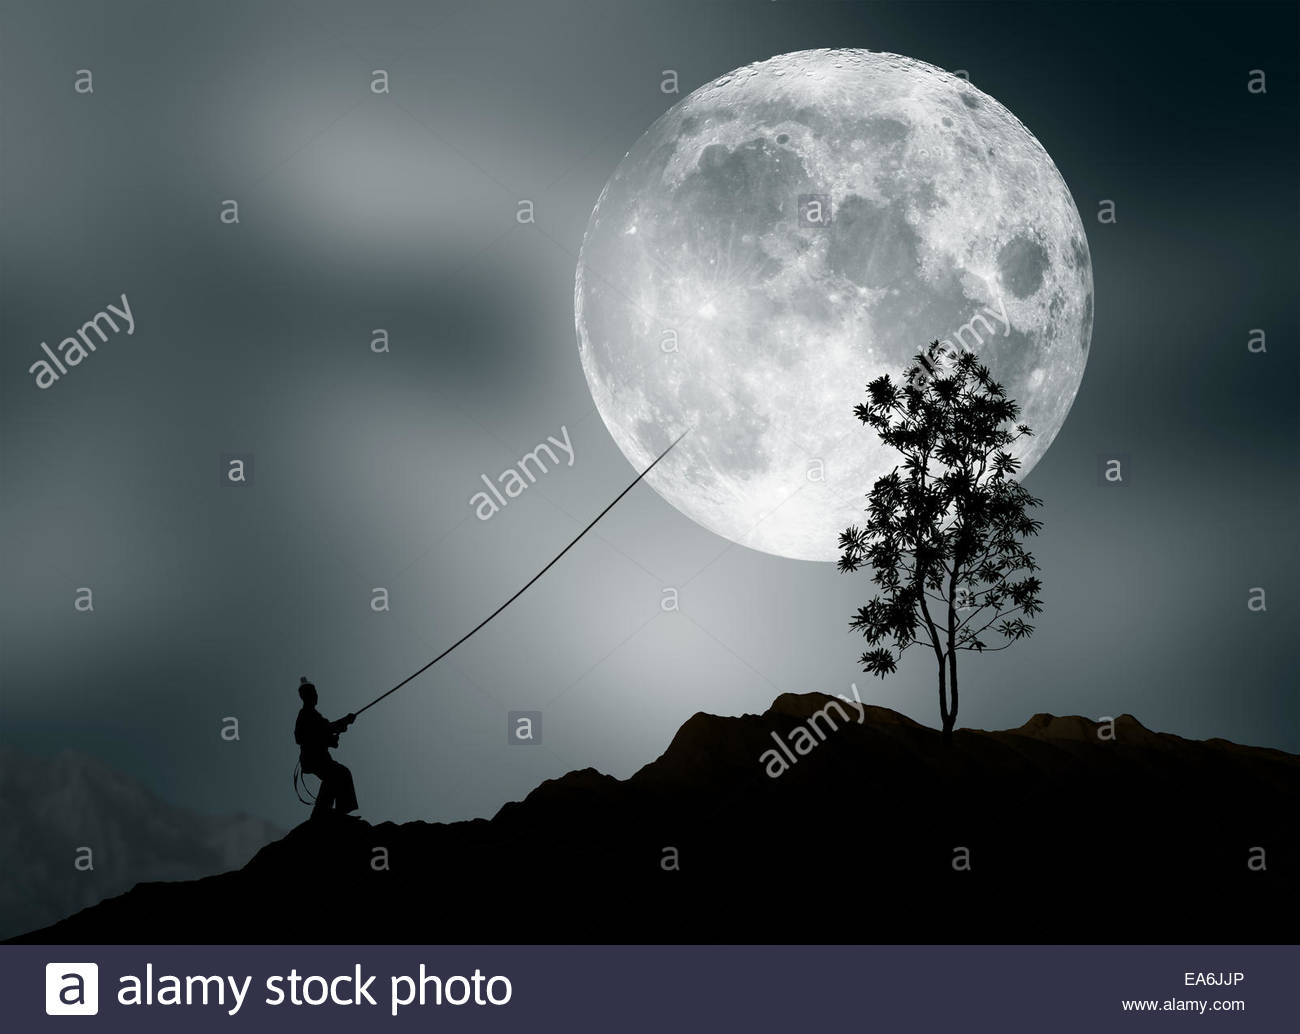 Man pretending to steal moon - Stock Image